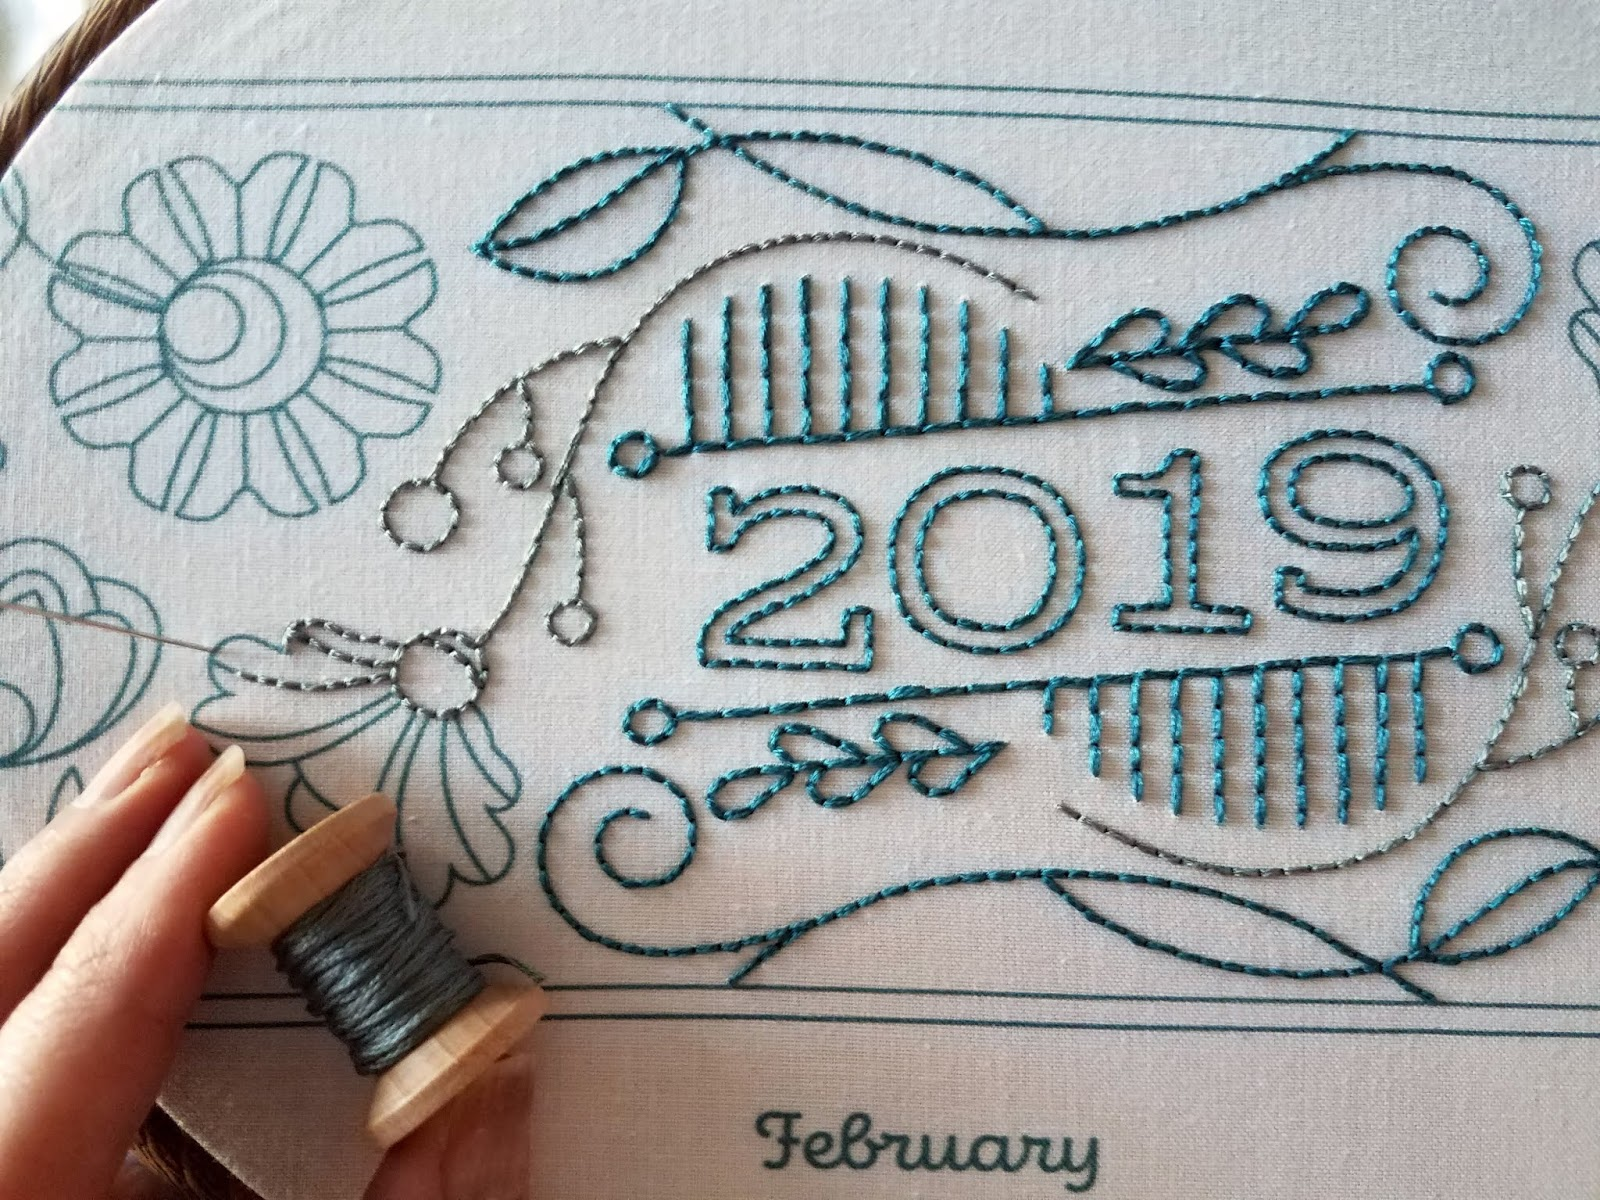 floresita's progress on Septemberhouse 2019 Fabric Calendar as featured on Feeling Stitchy